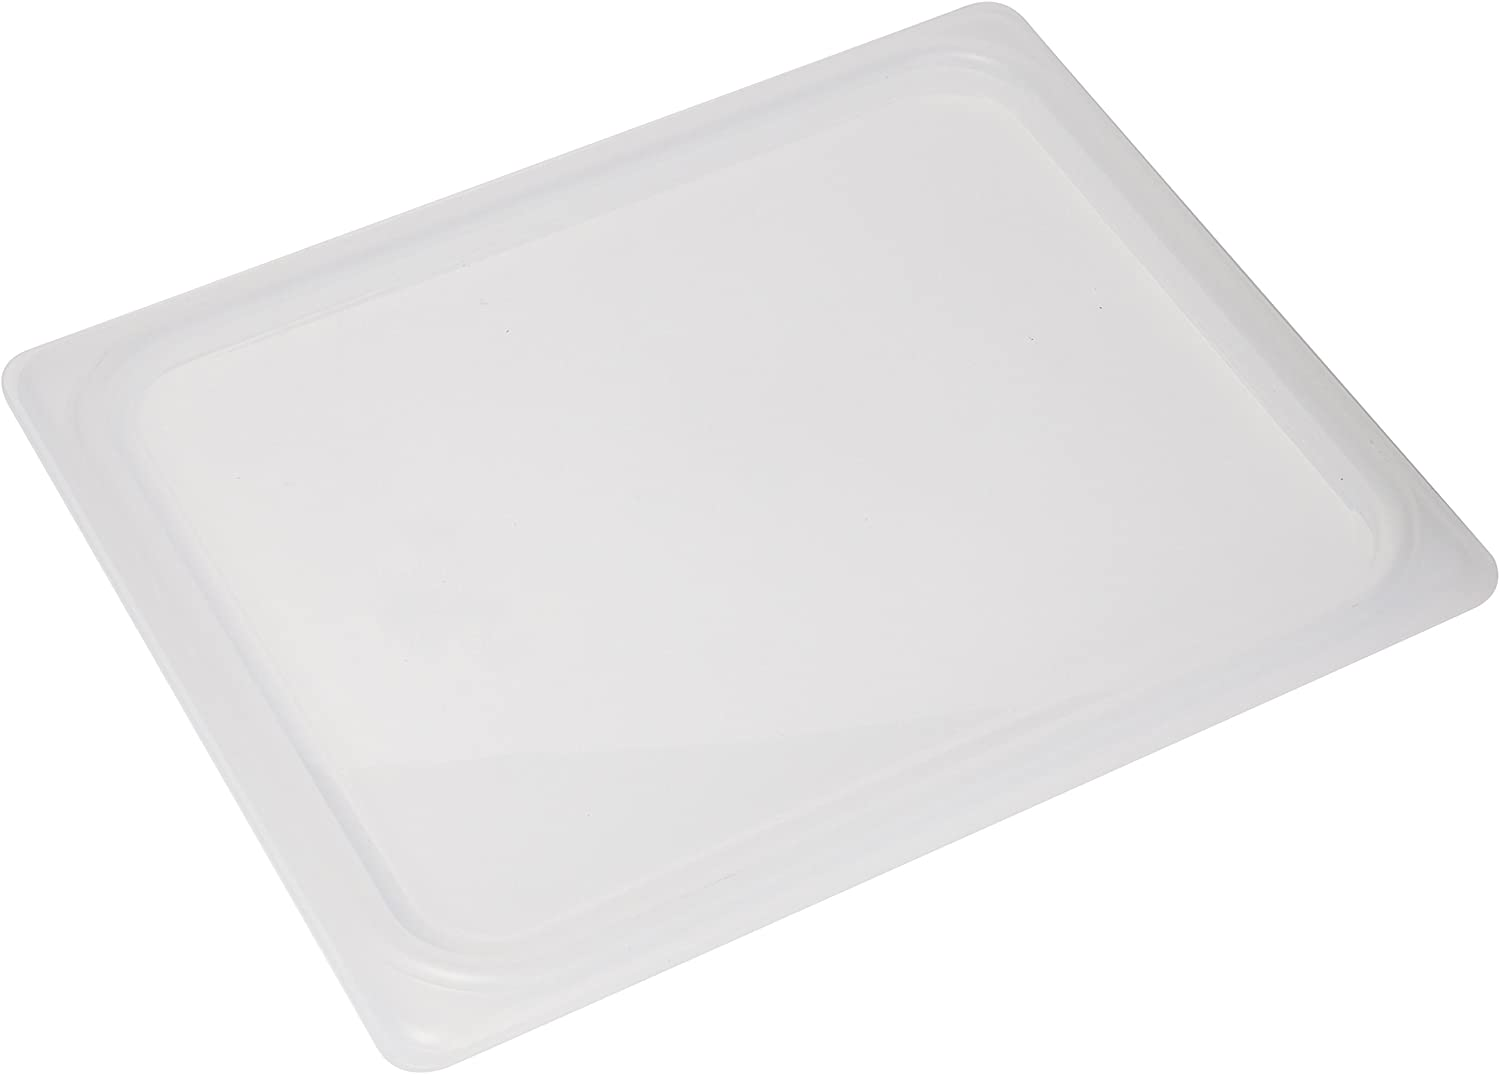 Cambro 20PPCWSC438 Sheer Blue 1/2 Size Food Pan Seal Cover